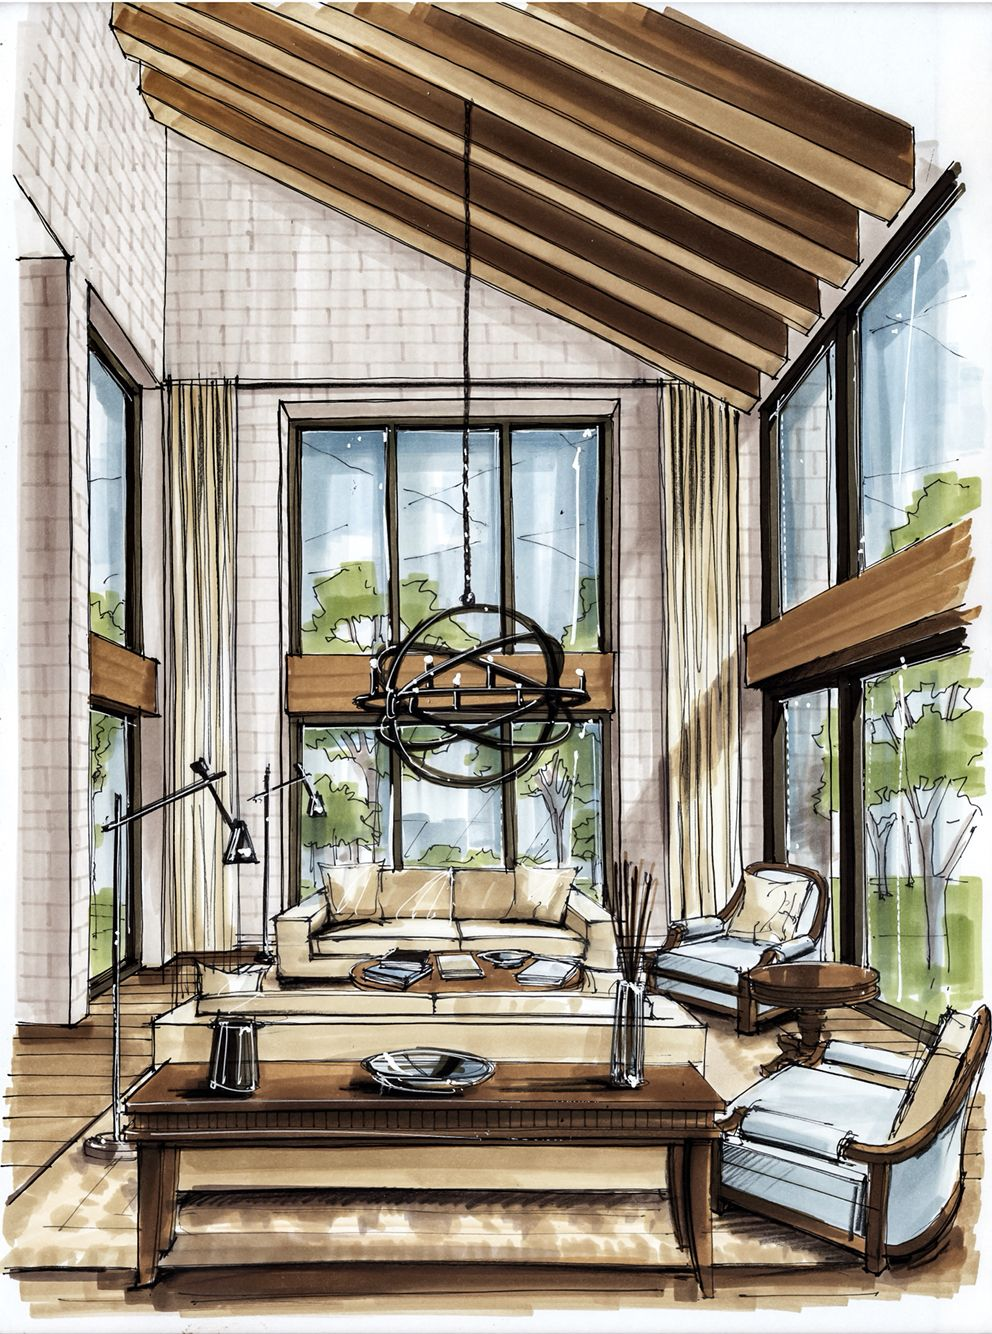 Amazing Use Of Detail By Markets And Pen Creates An Visually Aesthetic Experience Of The Room Clearly Dessin Architecture Dessin Architectural Croquis Maison